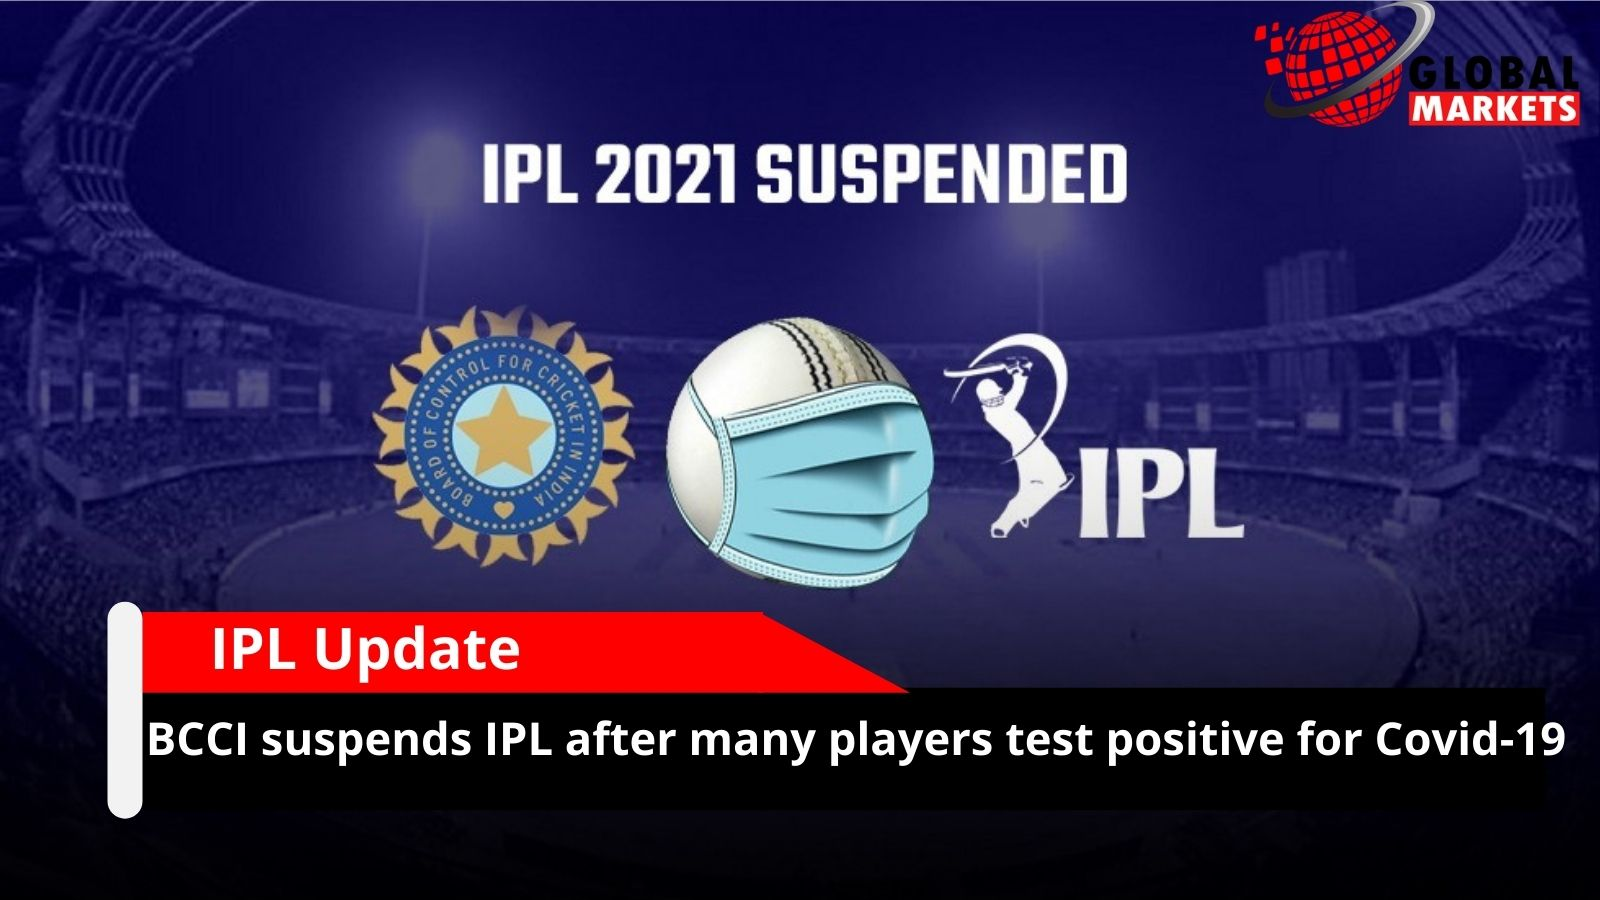 BCCI suspends IPL after many players test positive for Covid-19